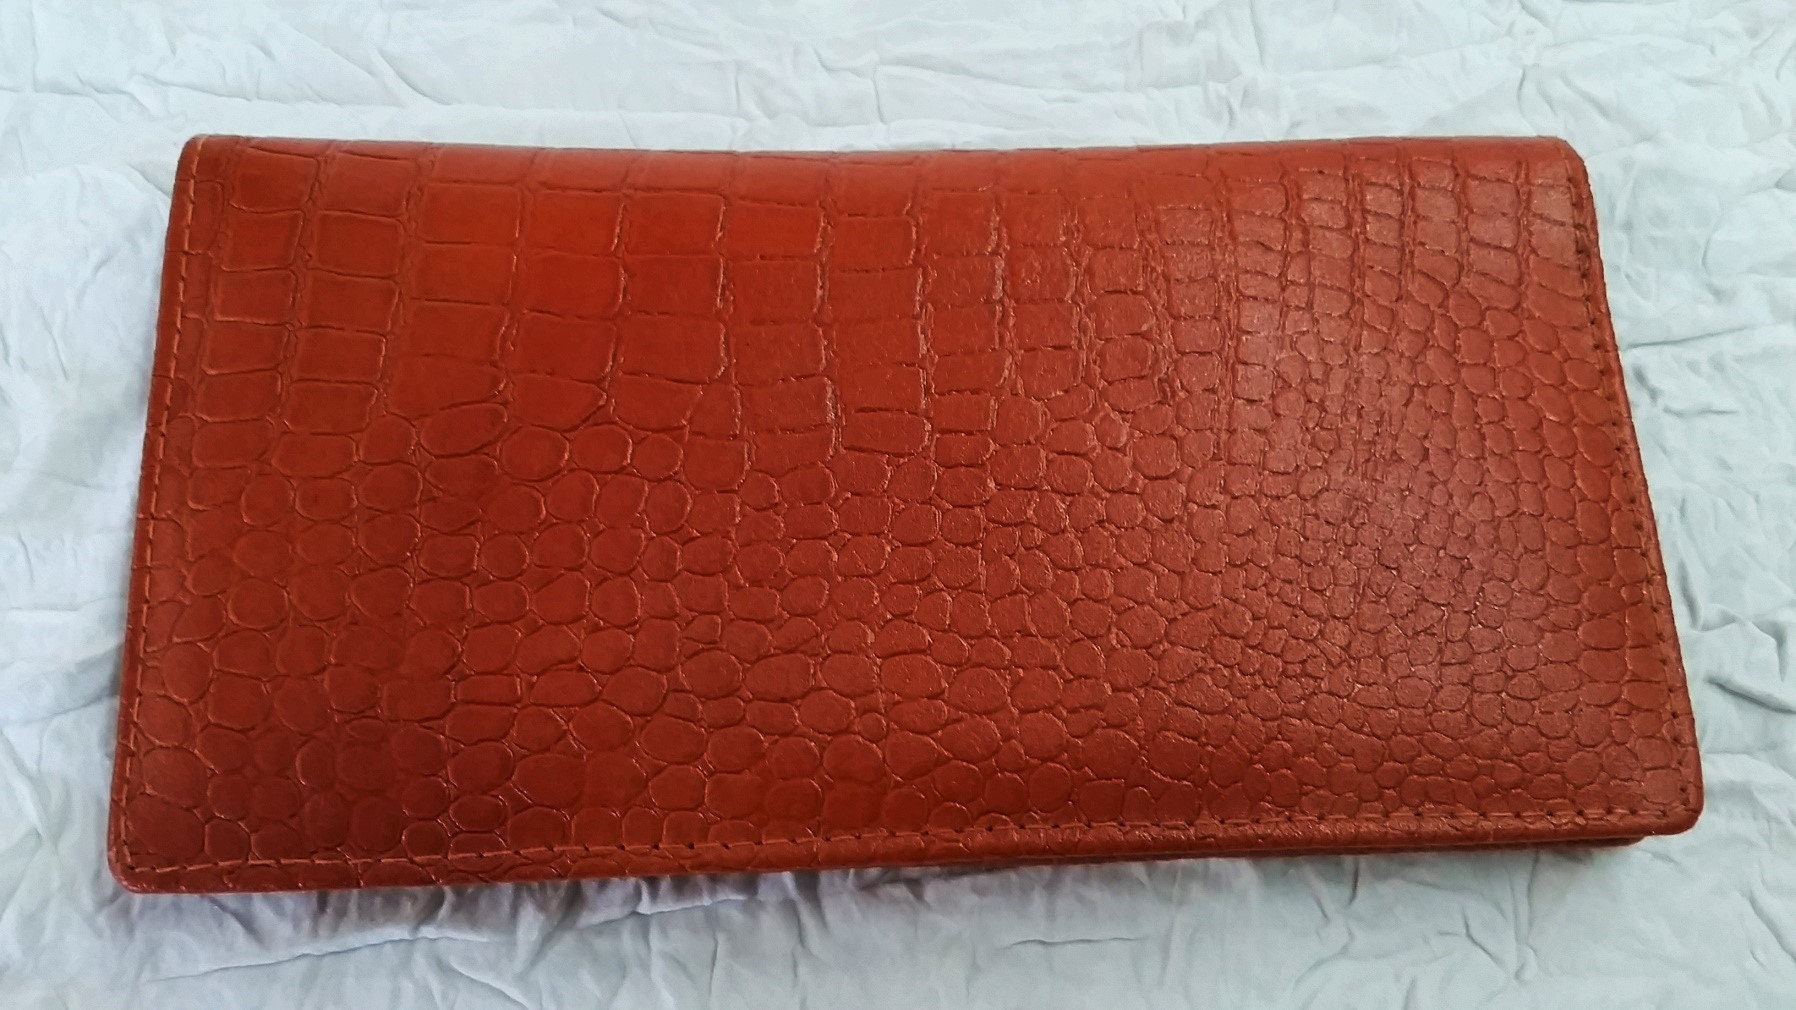 258db1596132 Designer Unisex Wallet, Amber Brown Hand Crafted Pebbled Leather